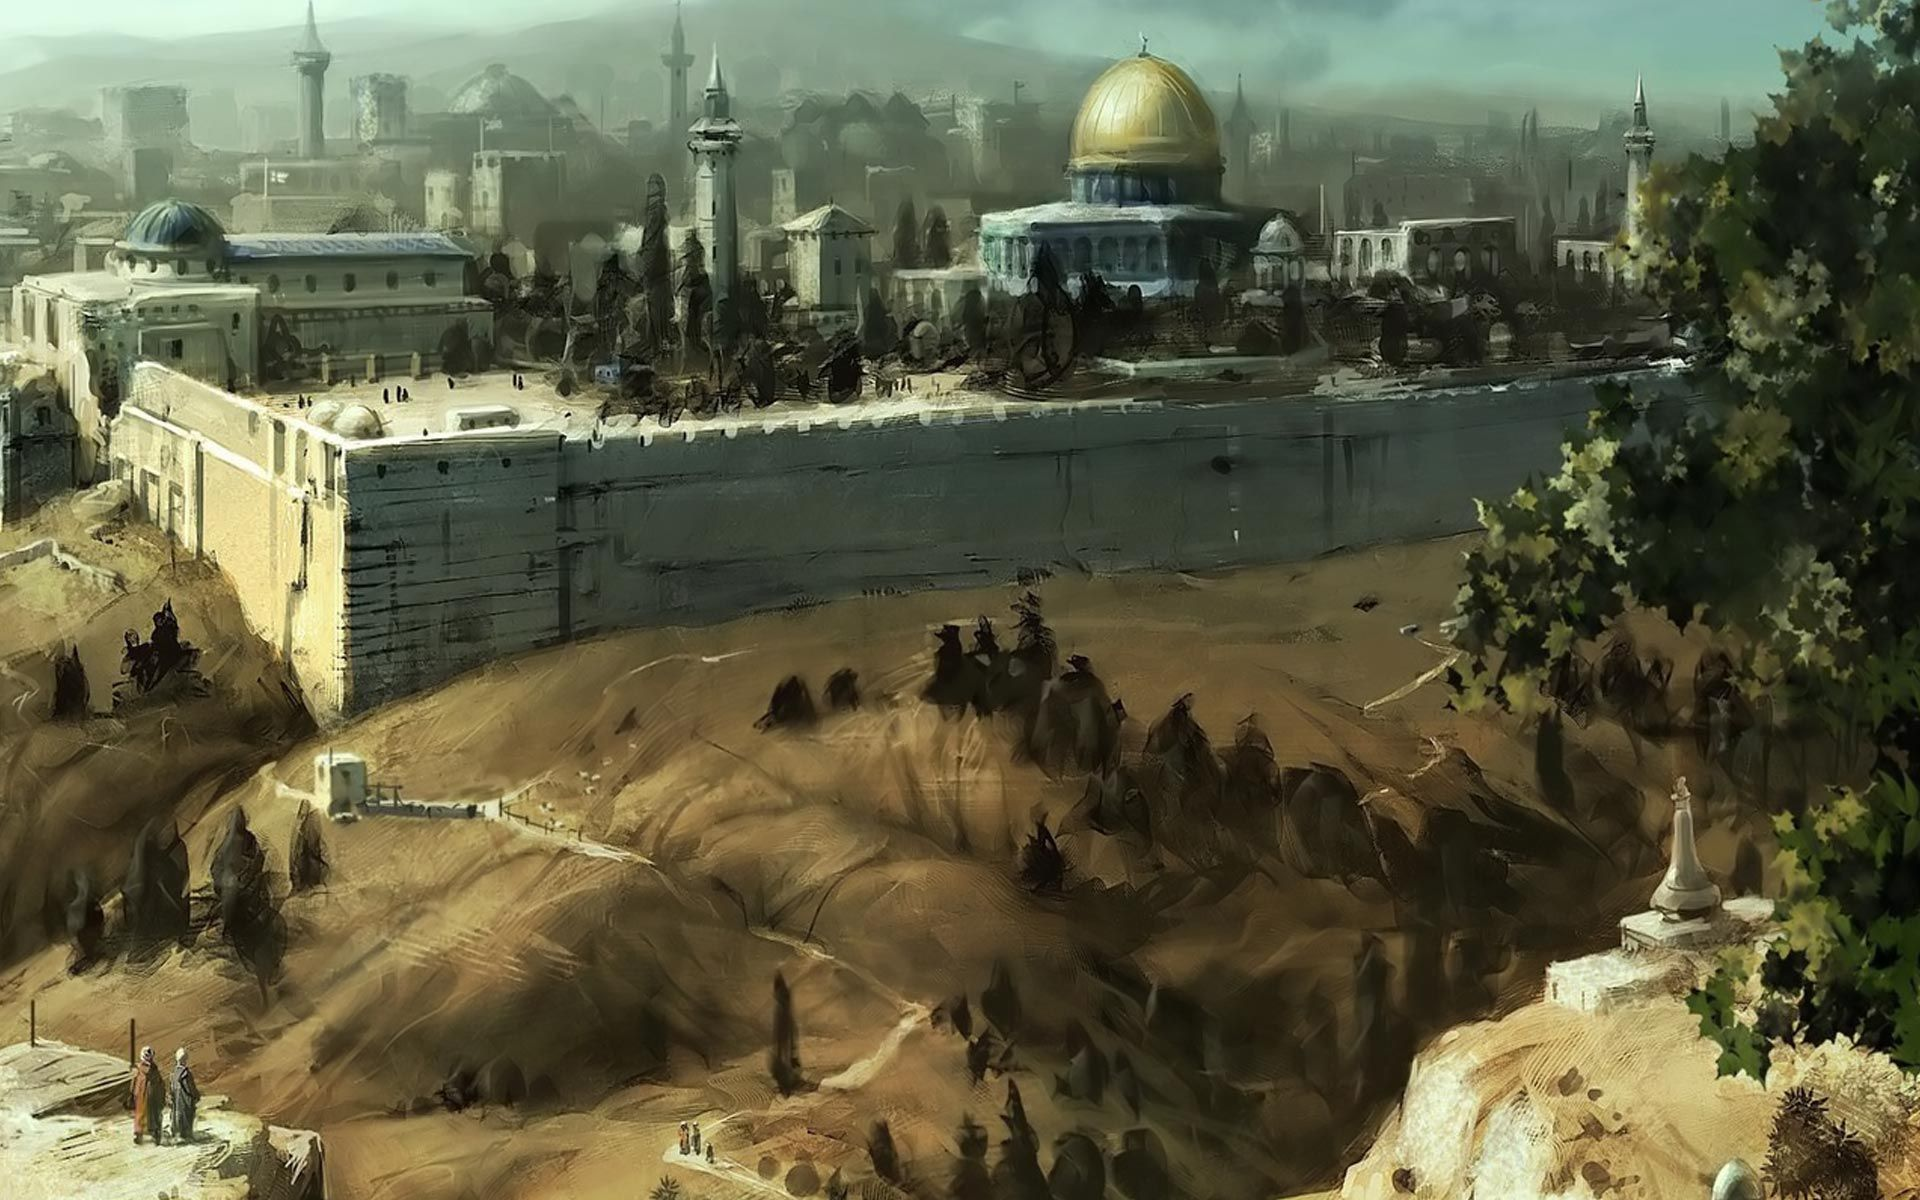 Awesome Jerusalem Oil Painting Picture of Art Wallpapers HD 1920x1200